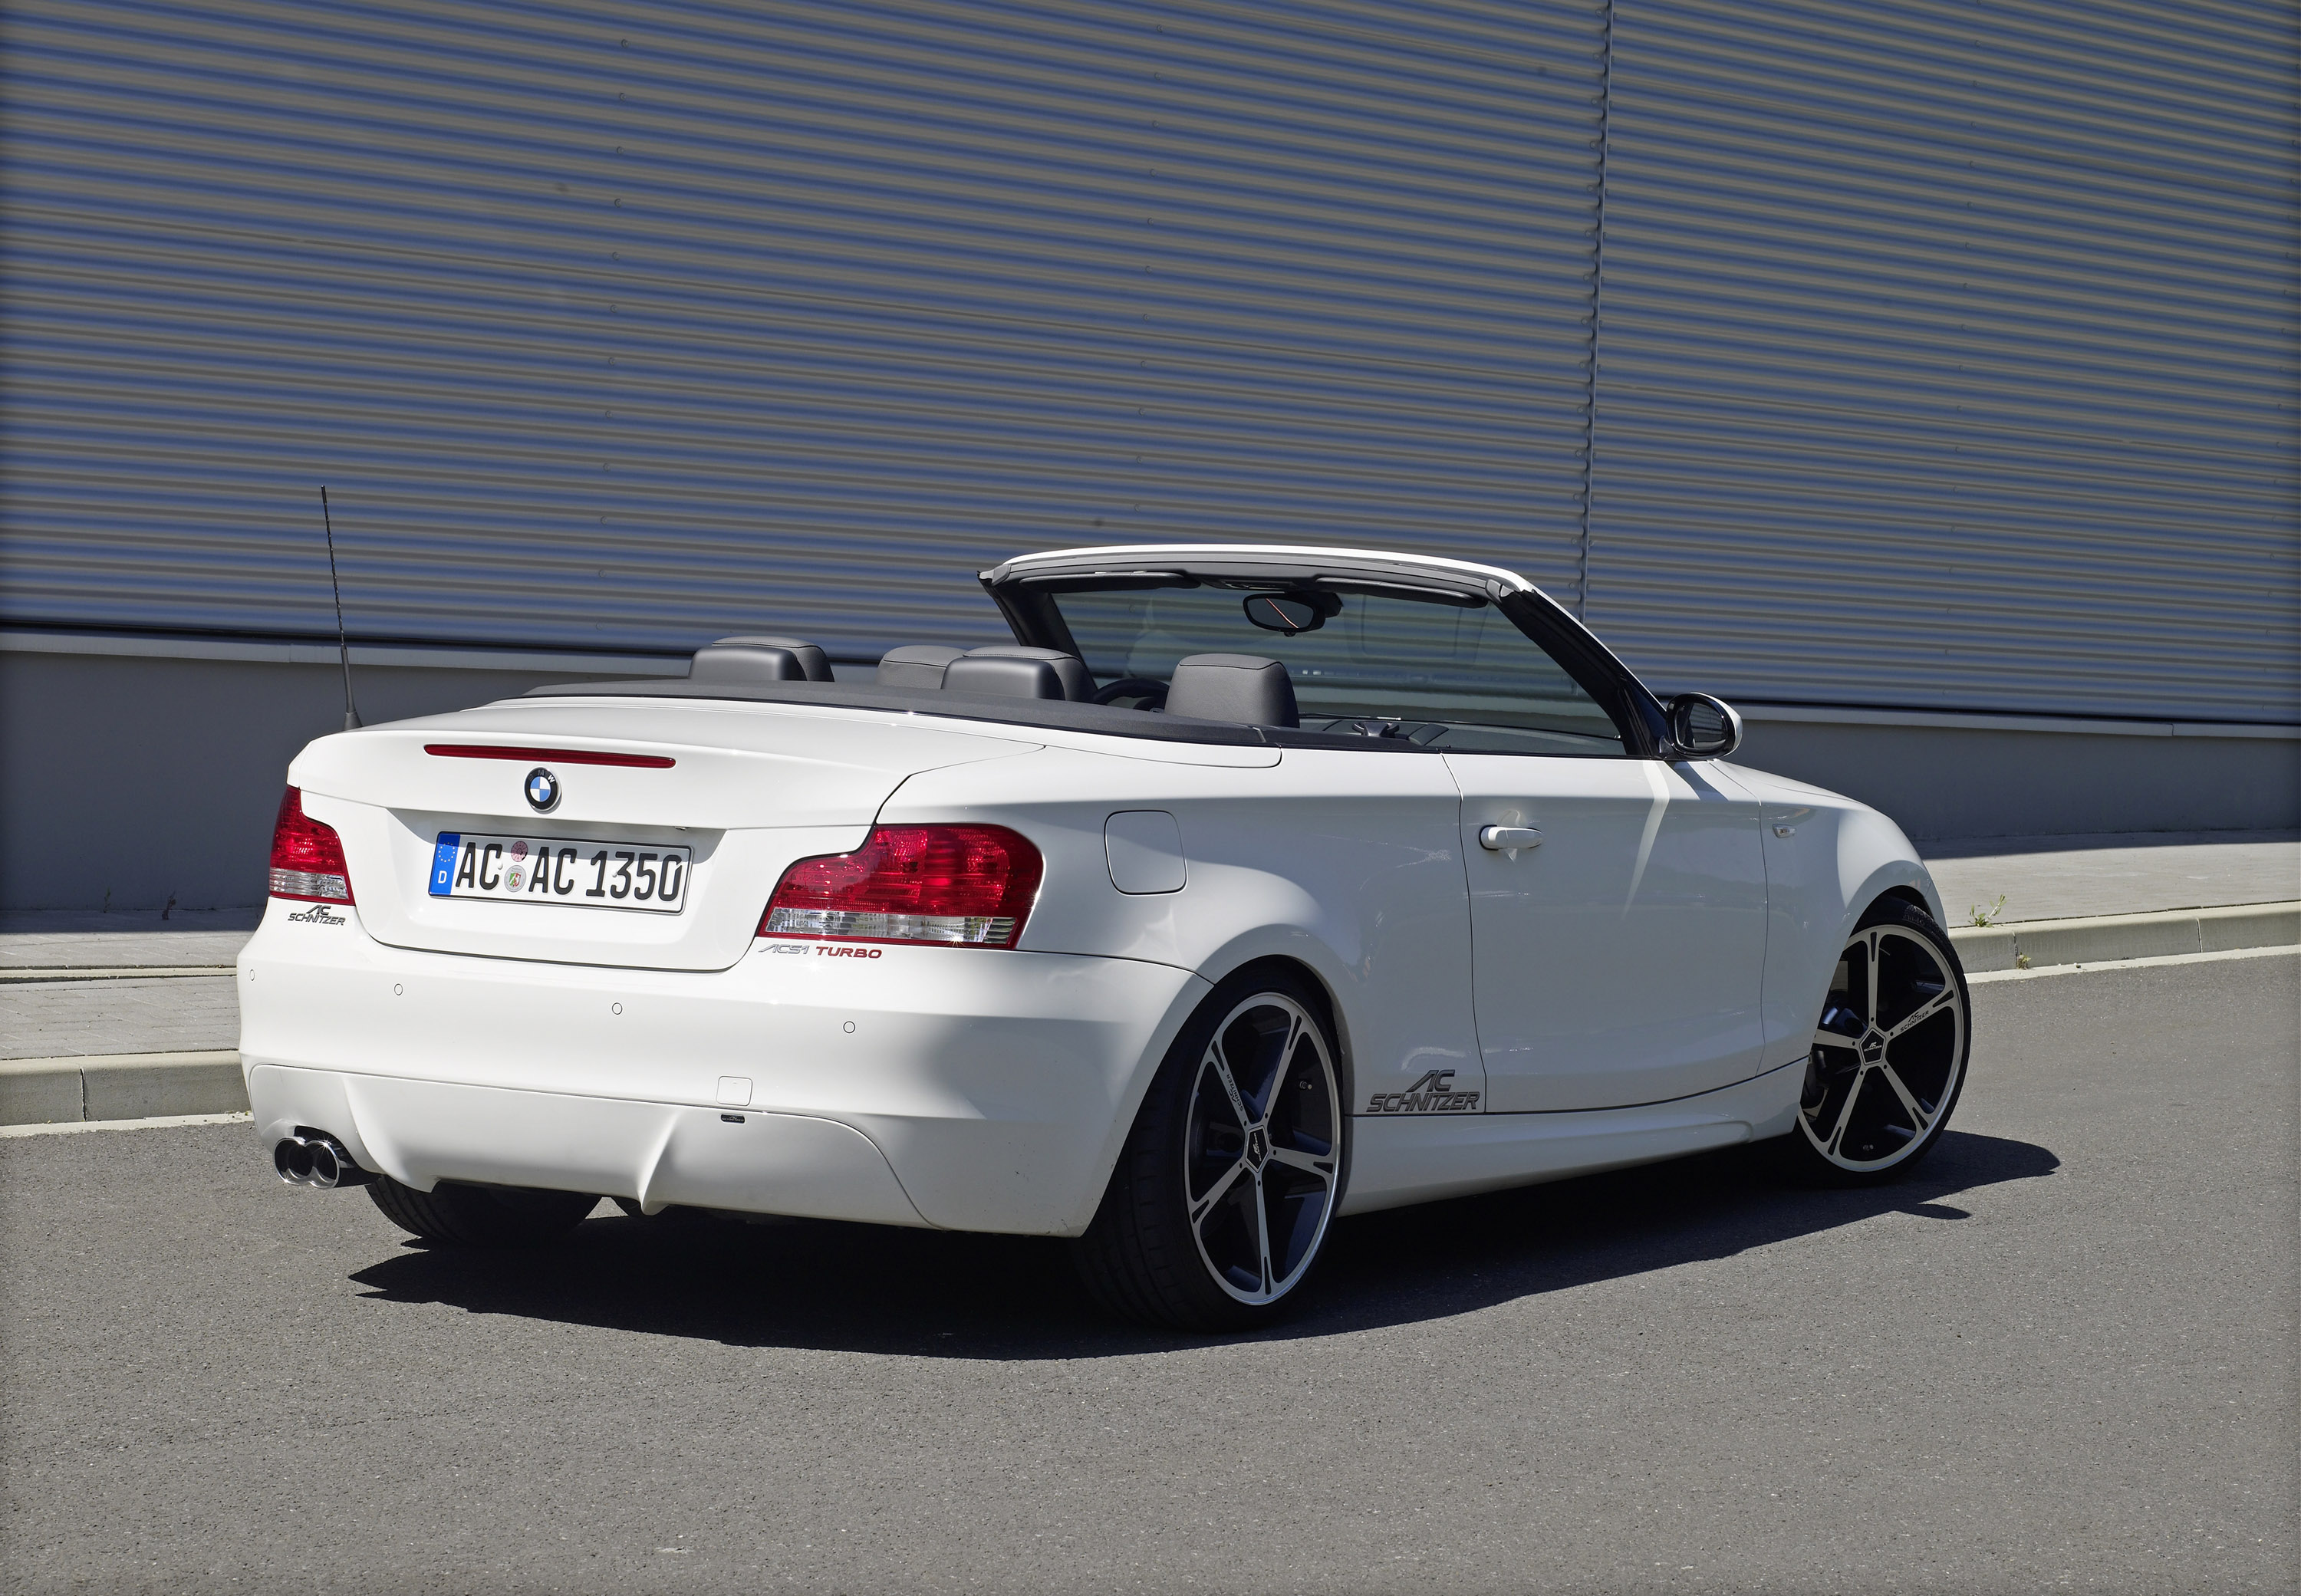 ACS1 BMW 1 series - Picture 14530